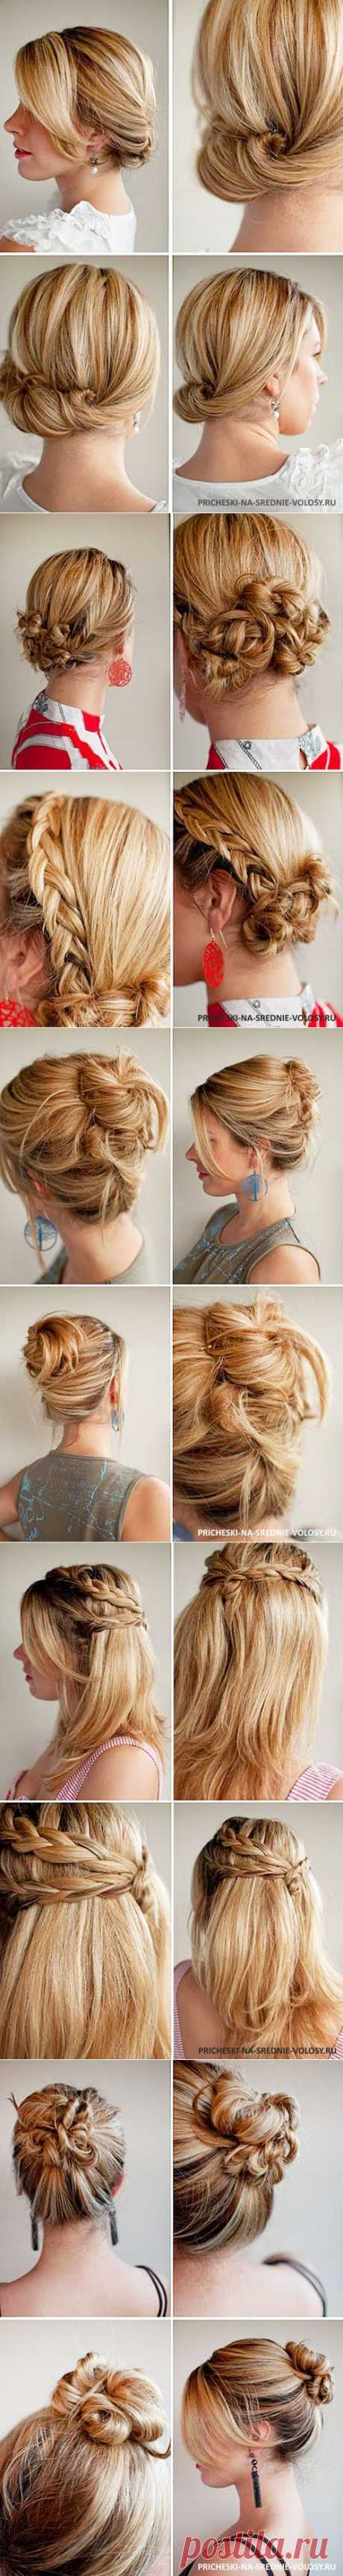 Daily hairdresses for average hair. 18 daily hairdresses